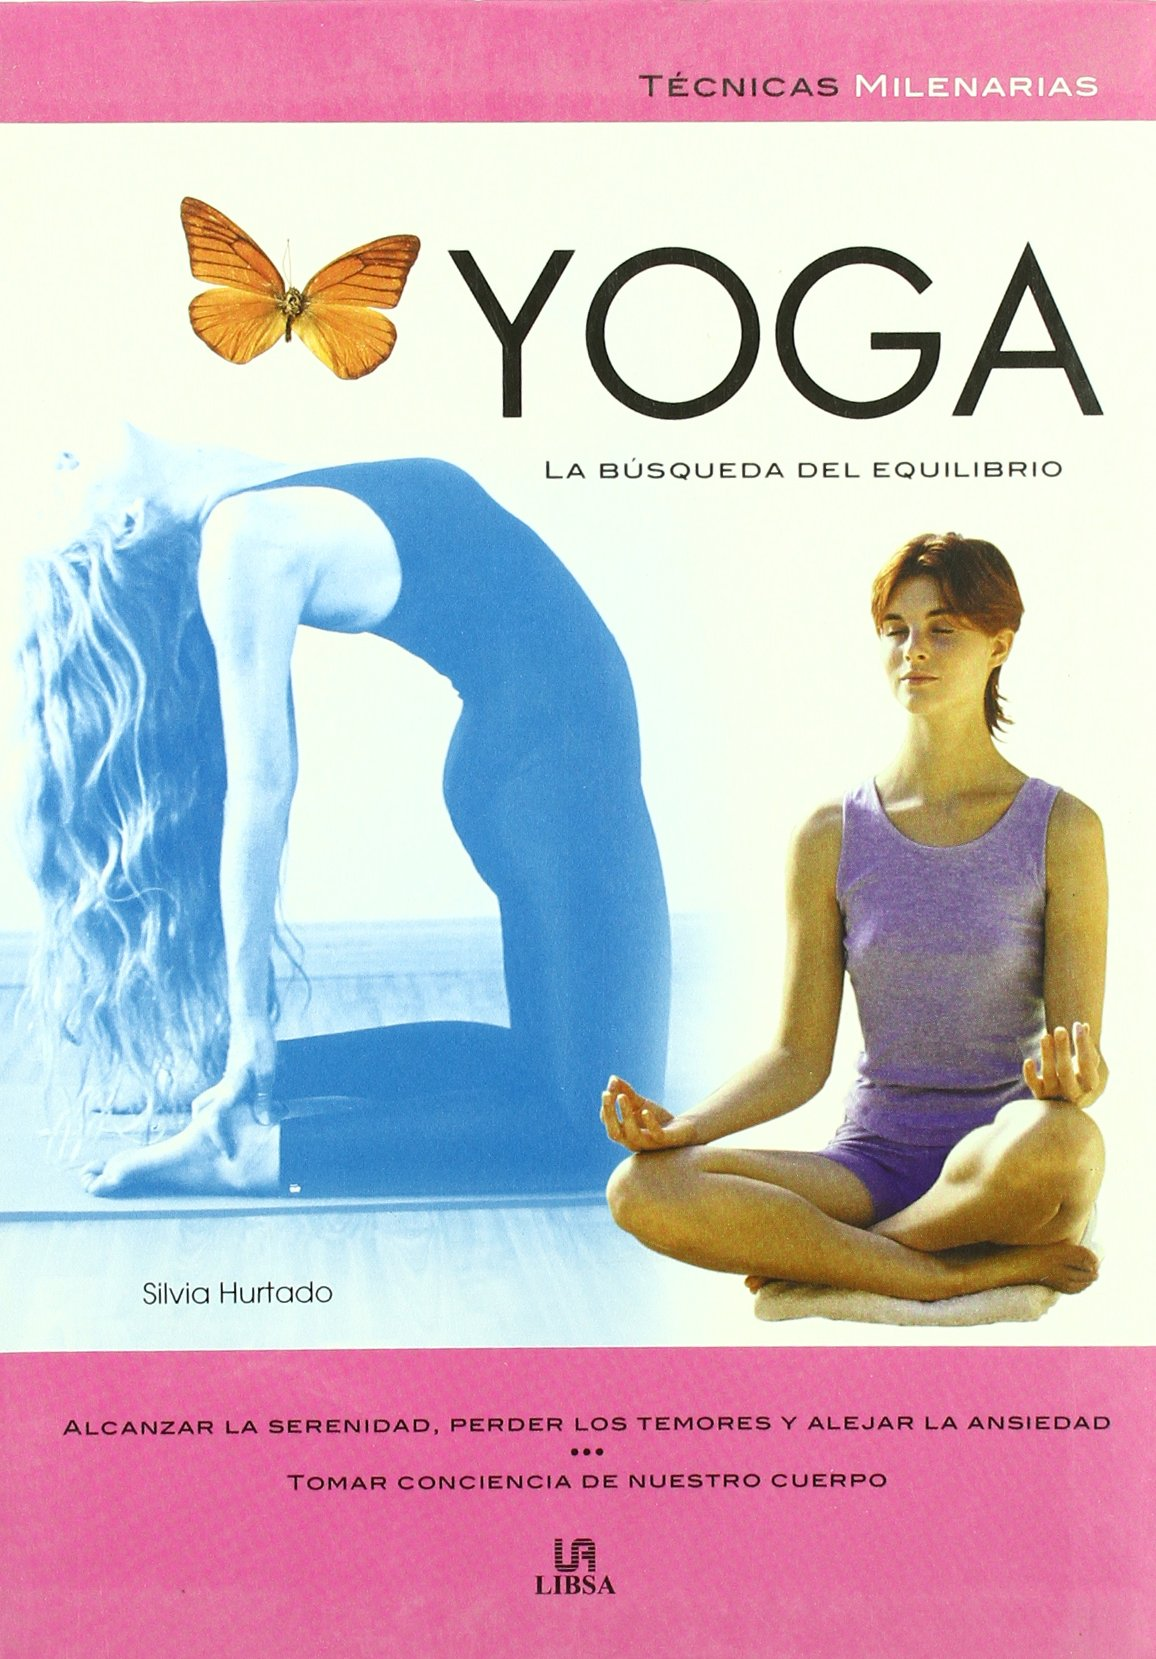 Yoga: Silvia Hurtado Corral: 9788466209250: Amazon.com: Books